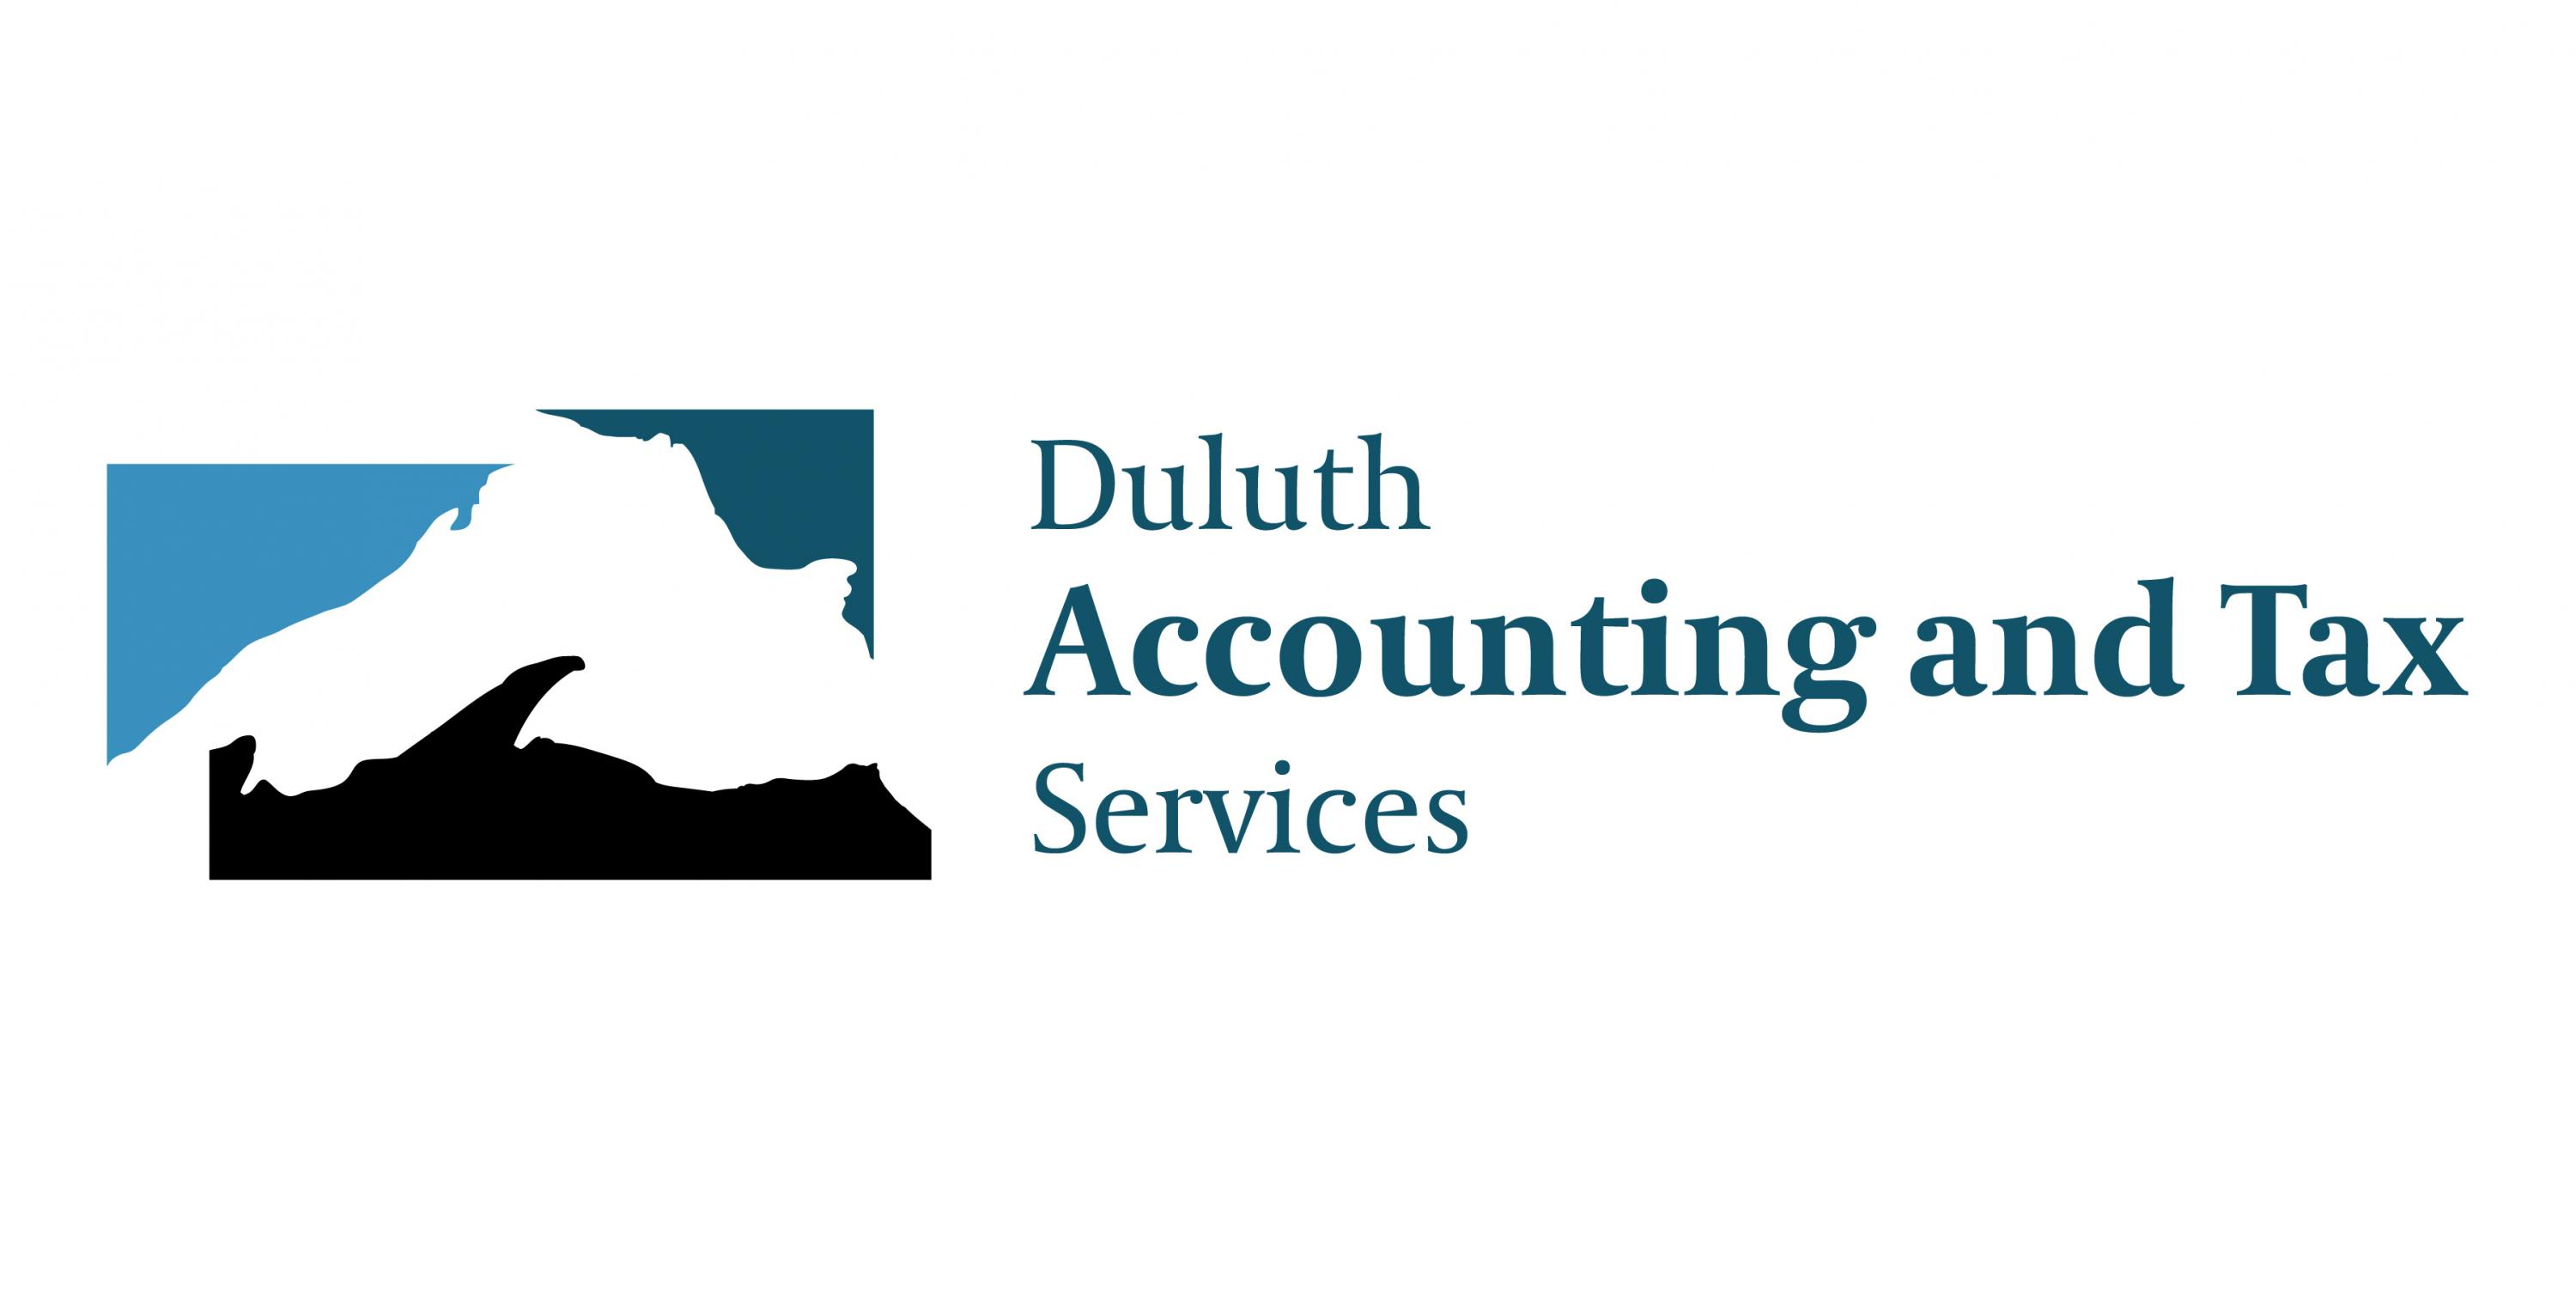 Duluth Accounting and Tax Services, LLC Slide Image